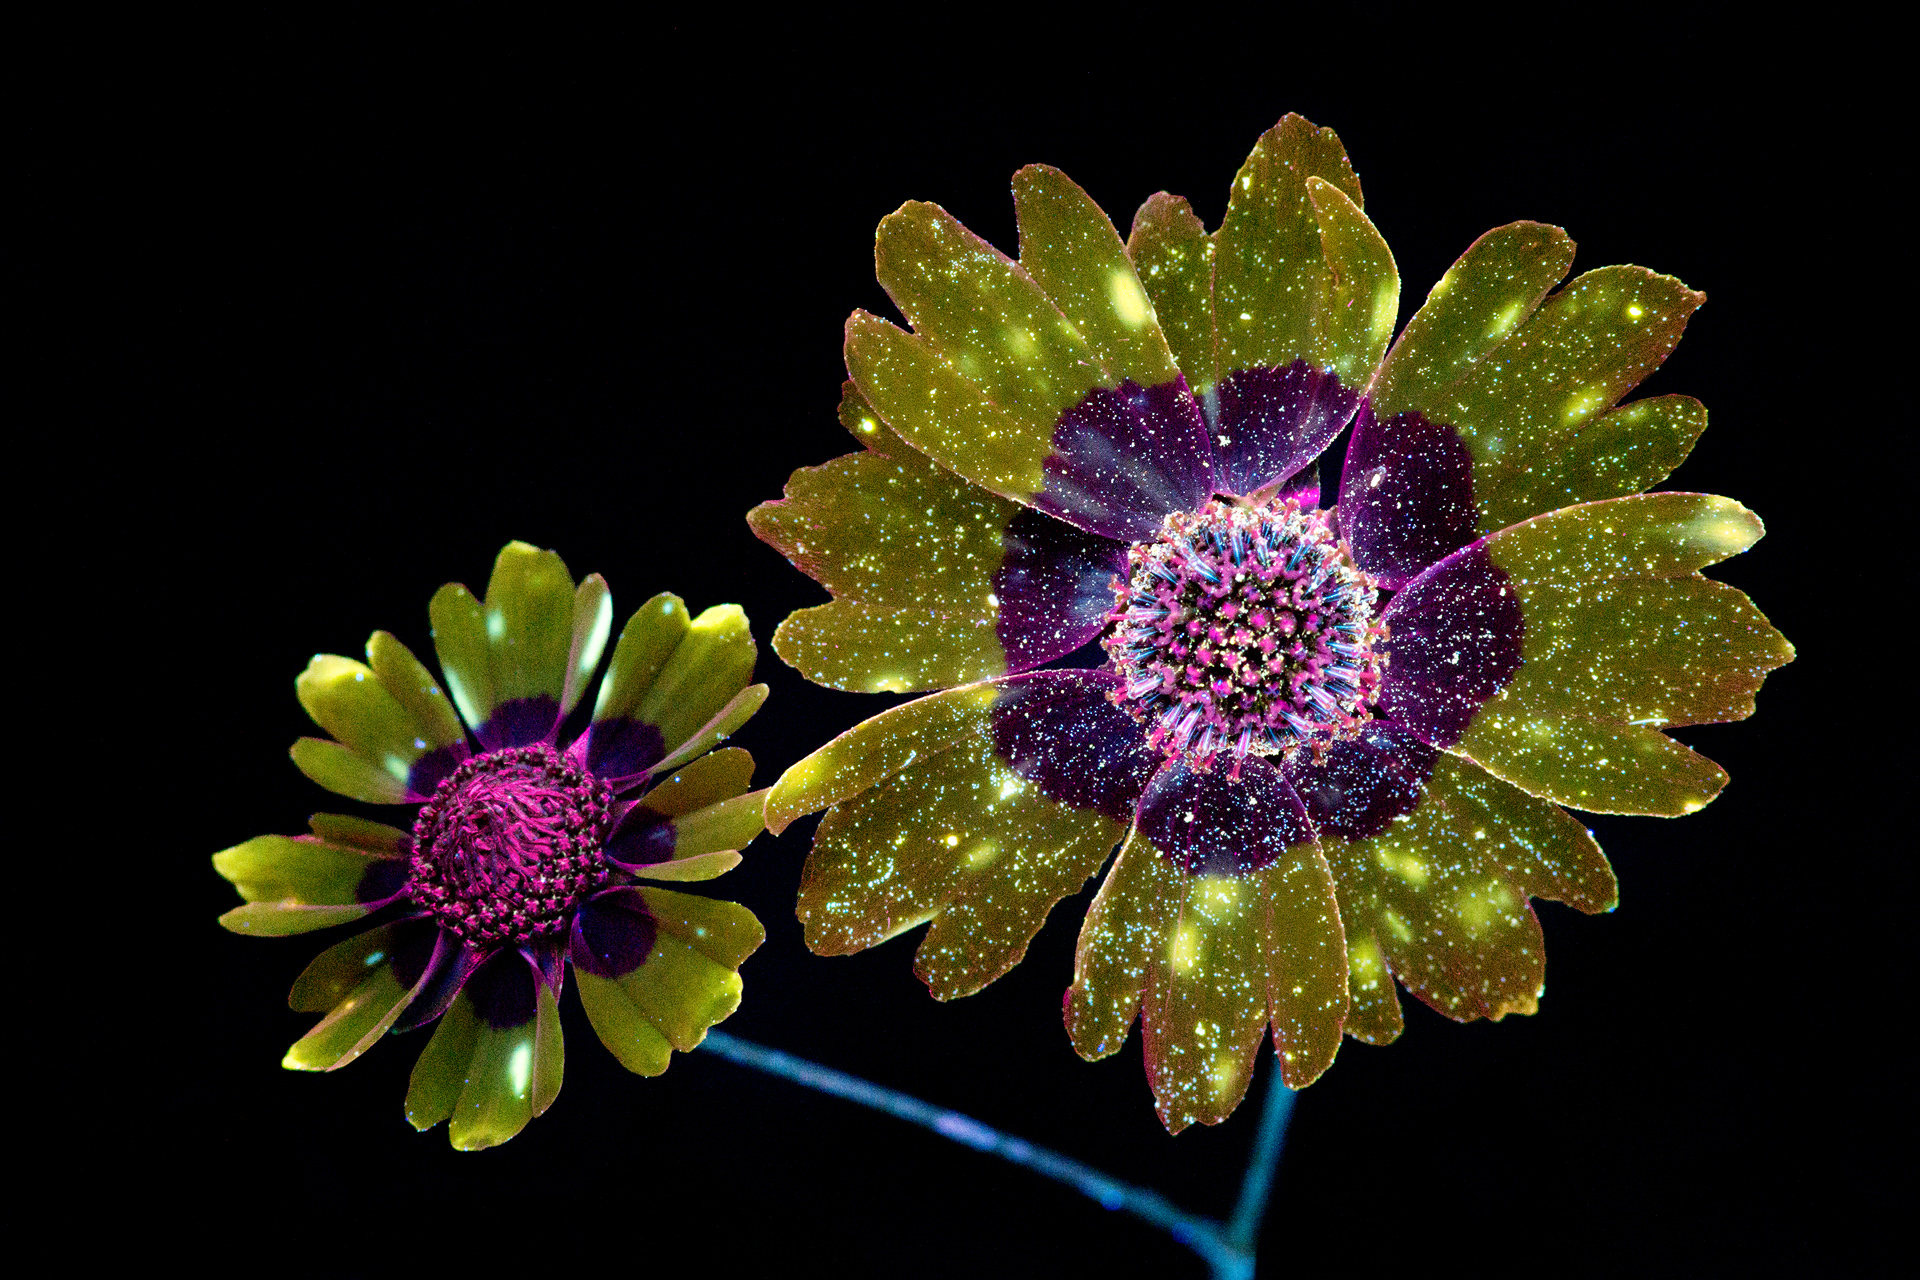 http://i2.wp.com/www.cpburrows.com/wp-content/uploads/2017/01/Plains-Coreopsis-Pair-2-Small.jpg?fit=1920%2C1280